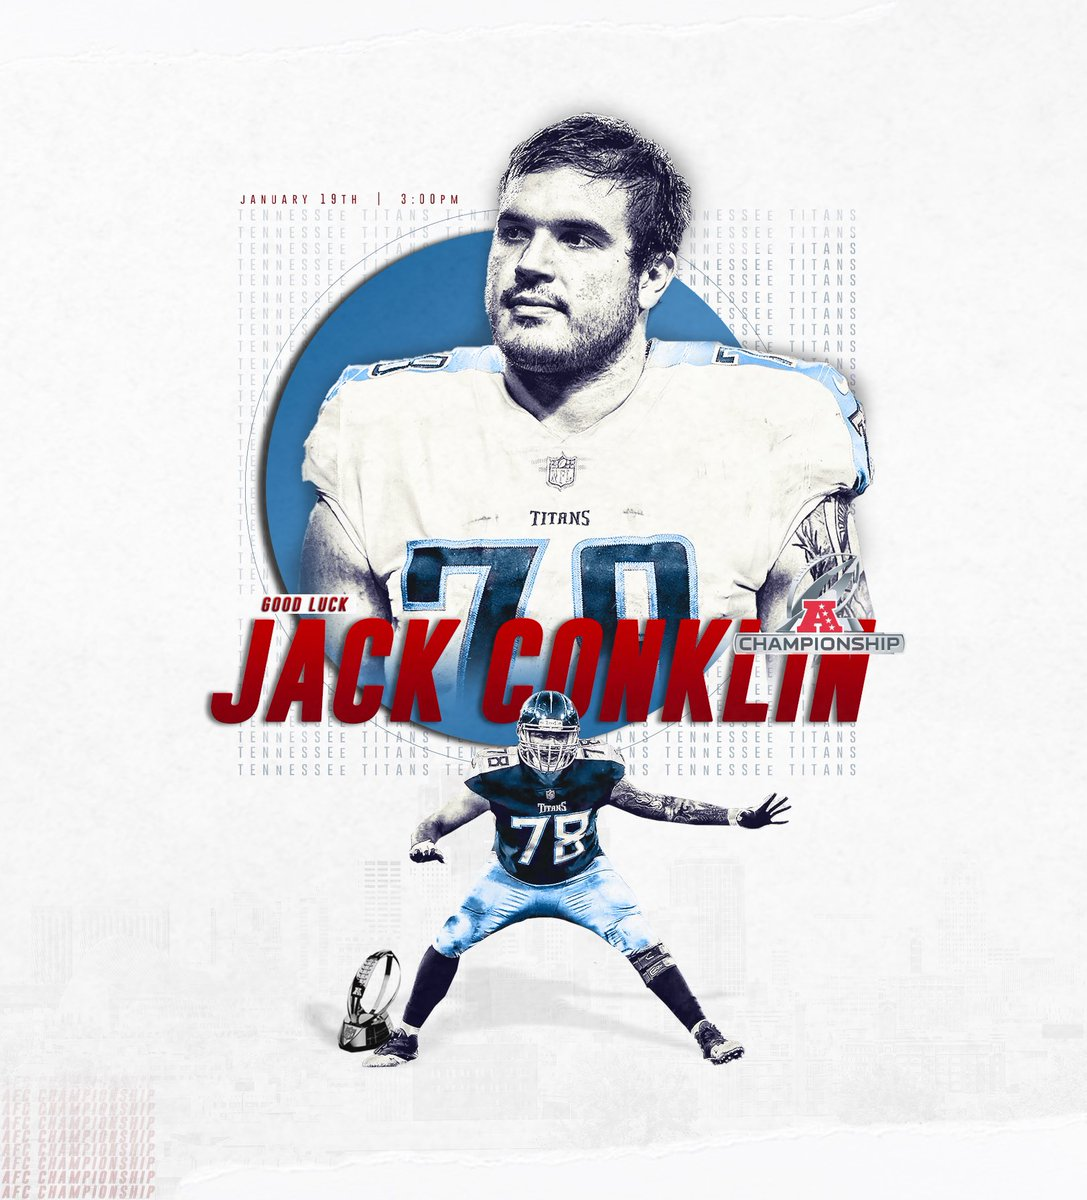 Good luck to our former Spartan, @Jack_Conklin78 in the AFC Championship today! #GoGreen <br>http://pic.twitter.com/SUCrmnoDZg